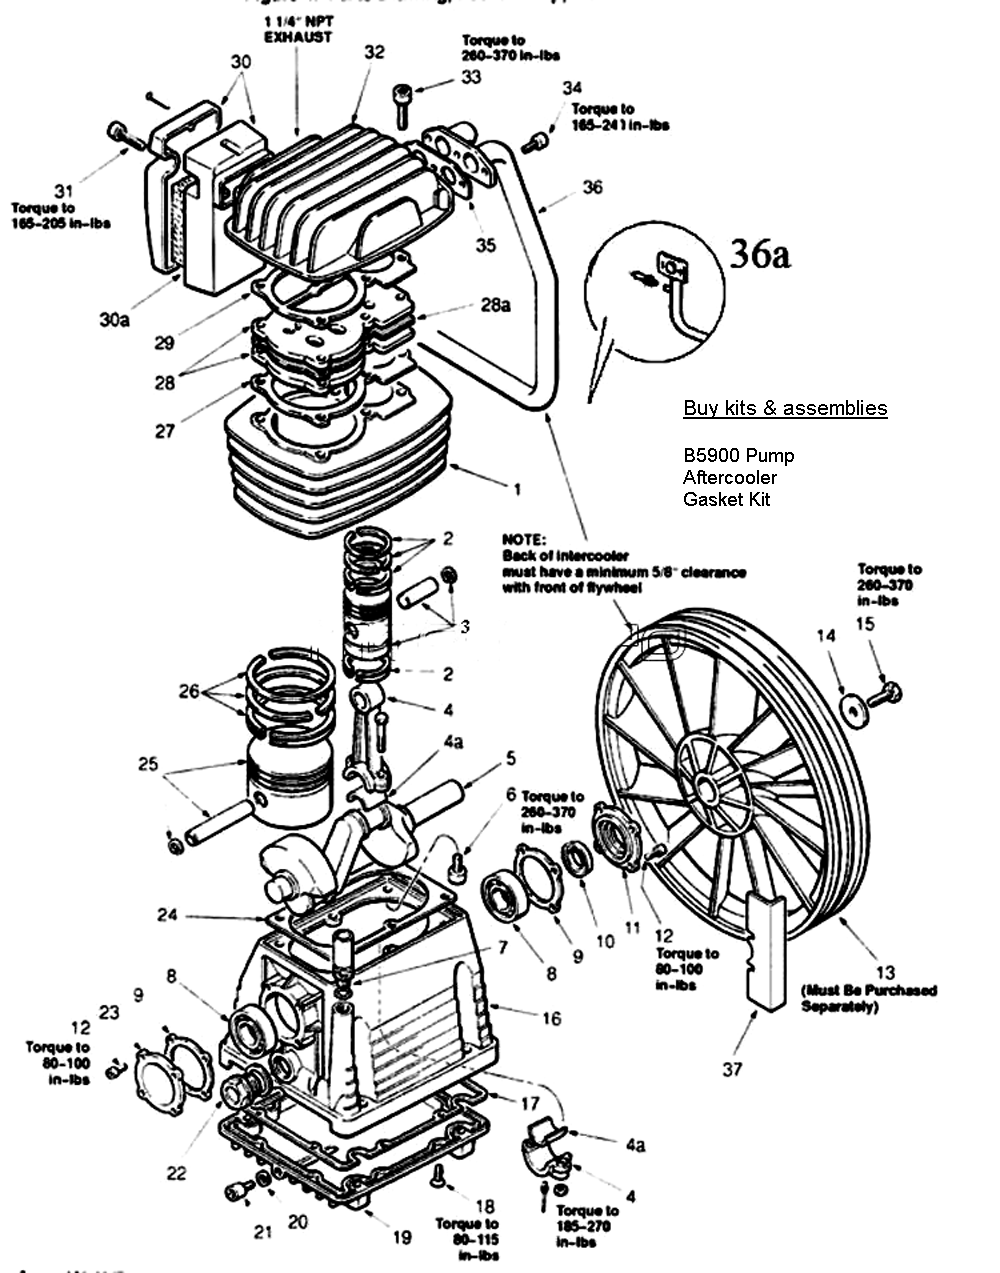 [WRG-1299] Ingersoll Rand Air Compressor Parts Manual 4000